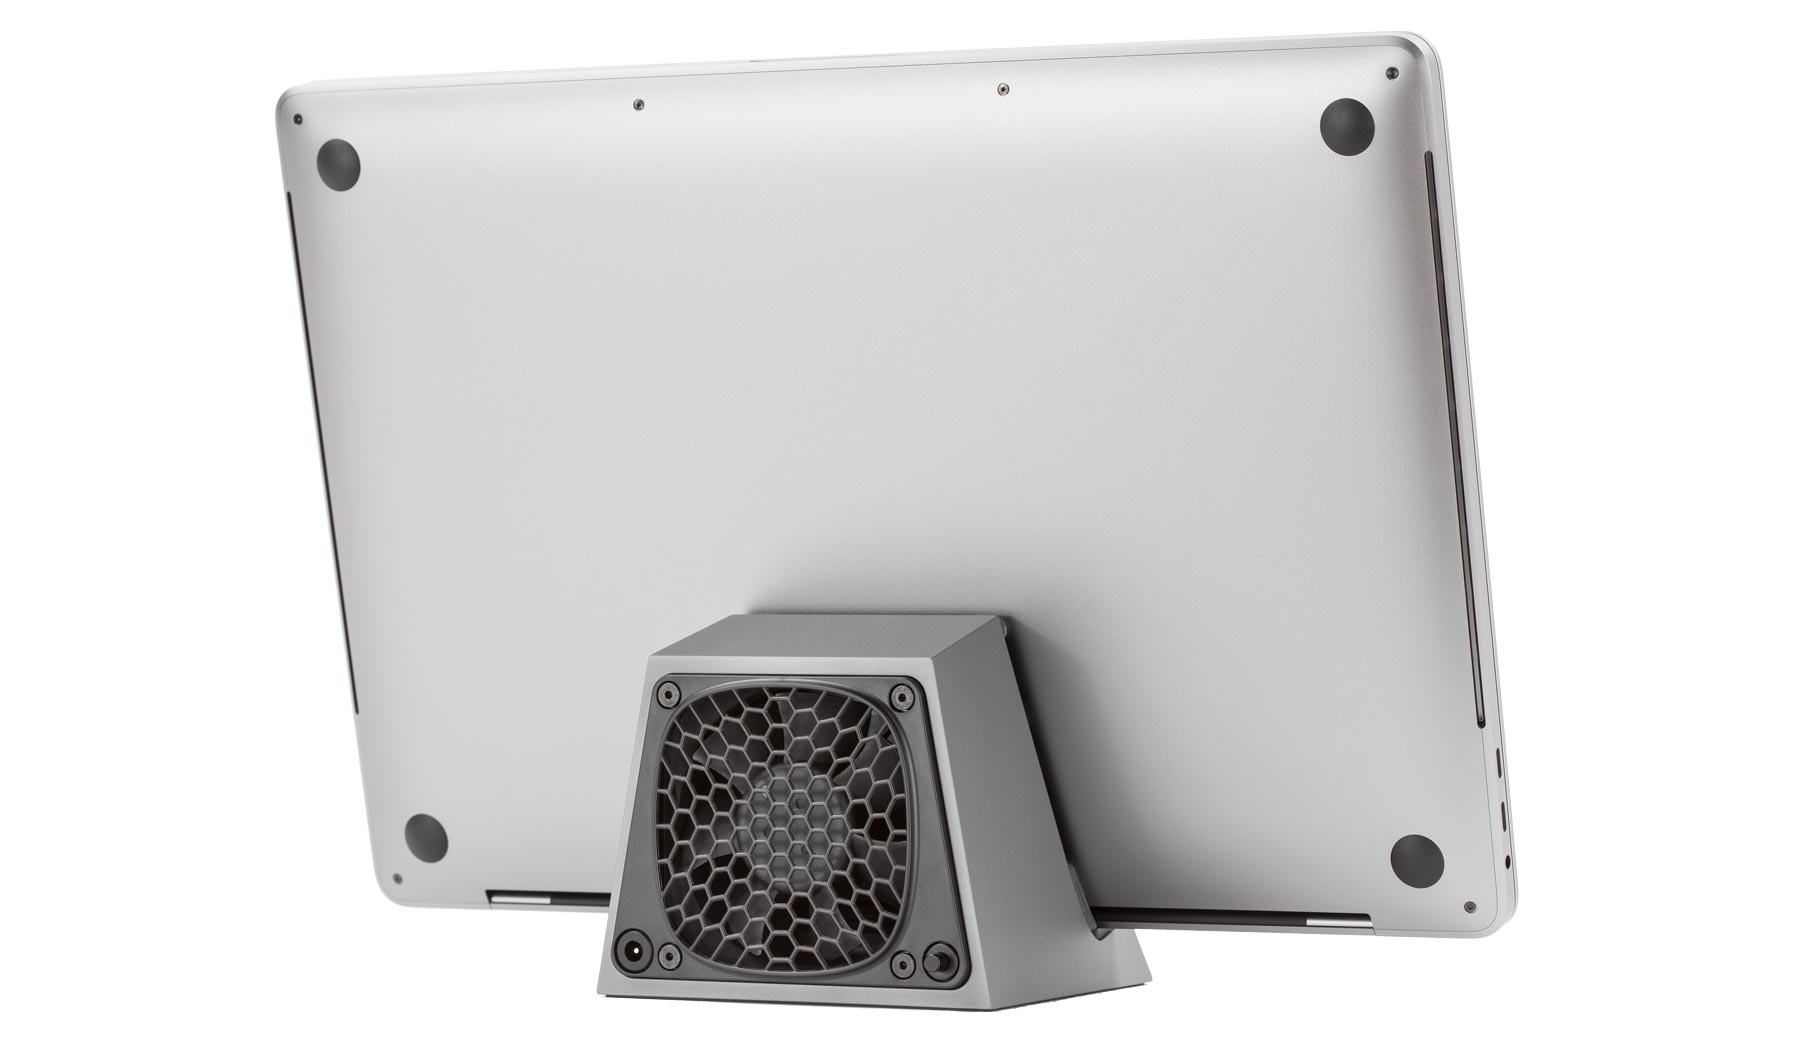 SVALT Cooling Dock model D2 Pro and D1 Pro with 16-inch MacBook Pro